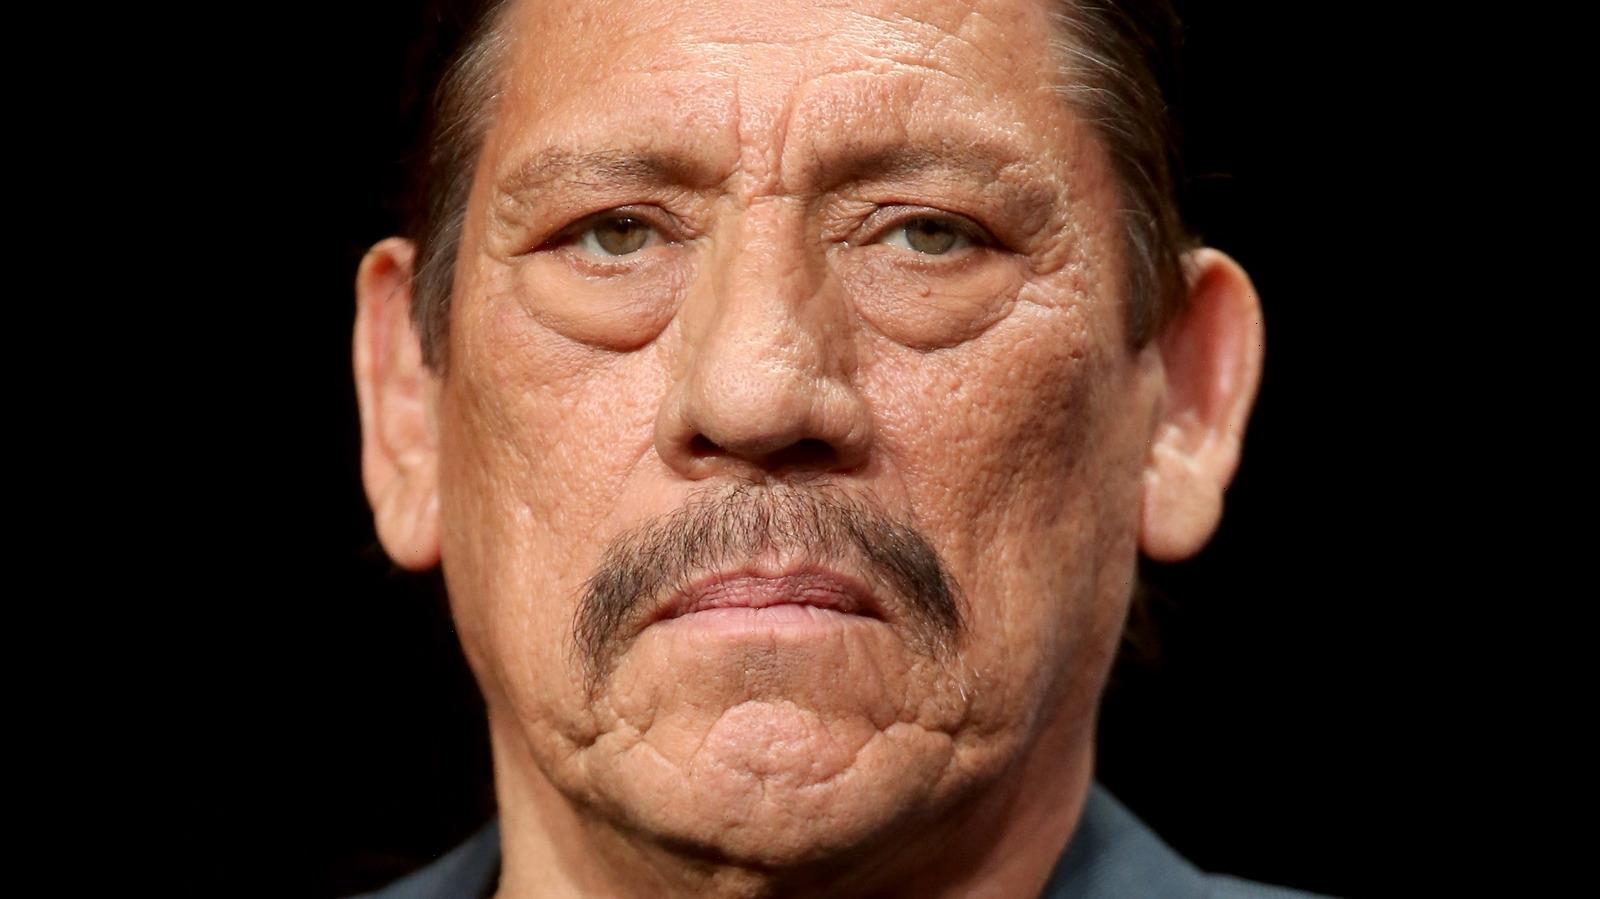 What You Need To Know About Danny Trejo